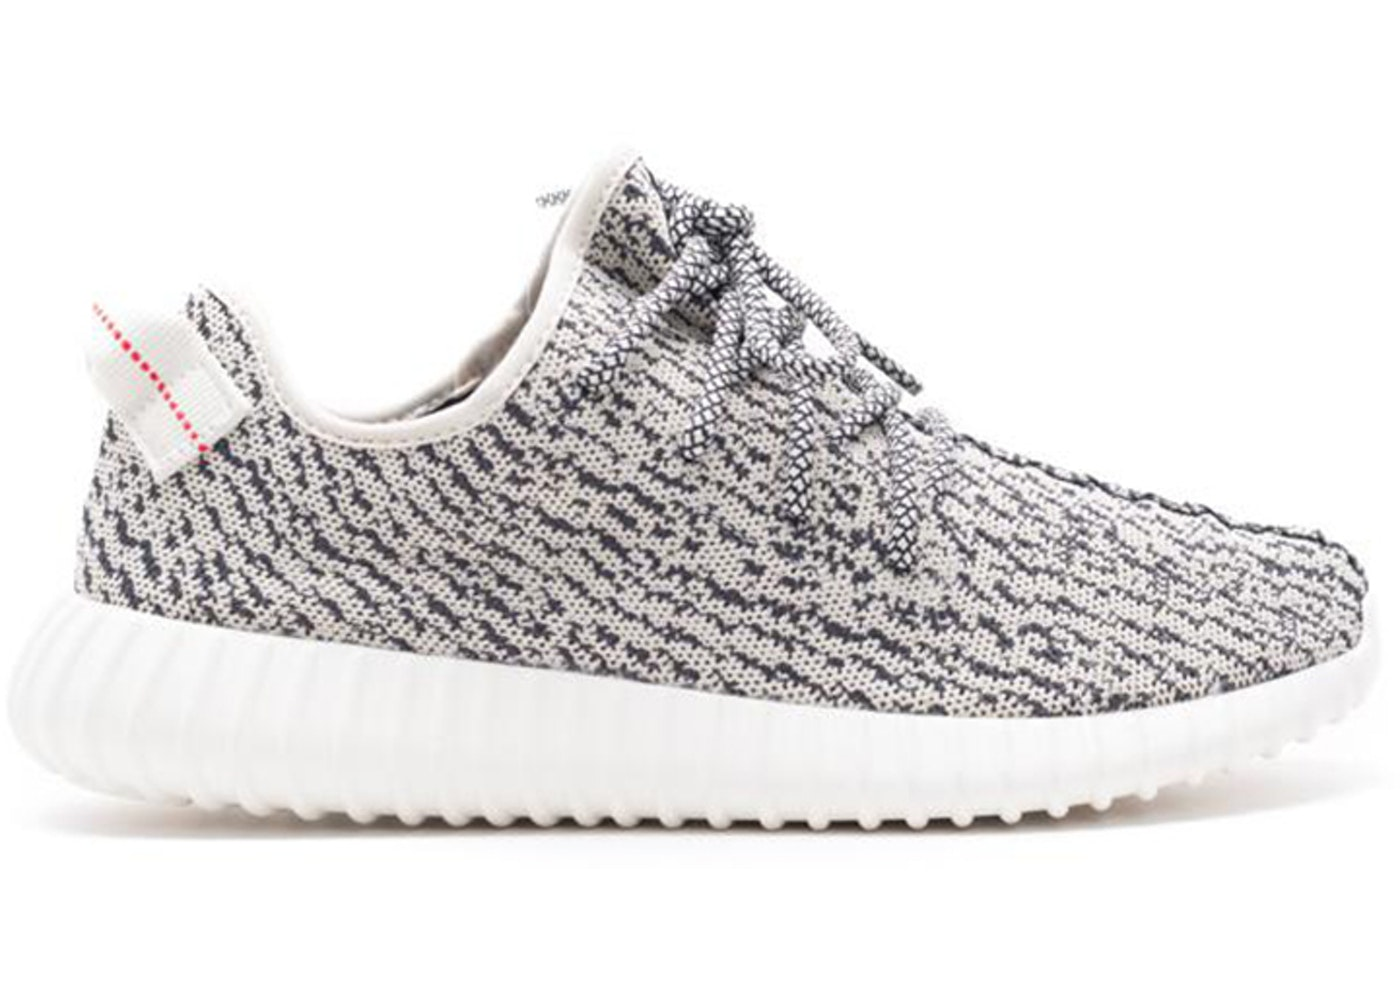 Kanye West x adidas Yeezy 350 Boost Turtle (AQ4832) KIX FILES